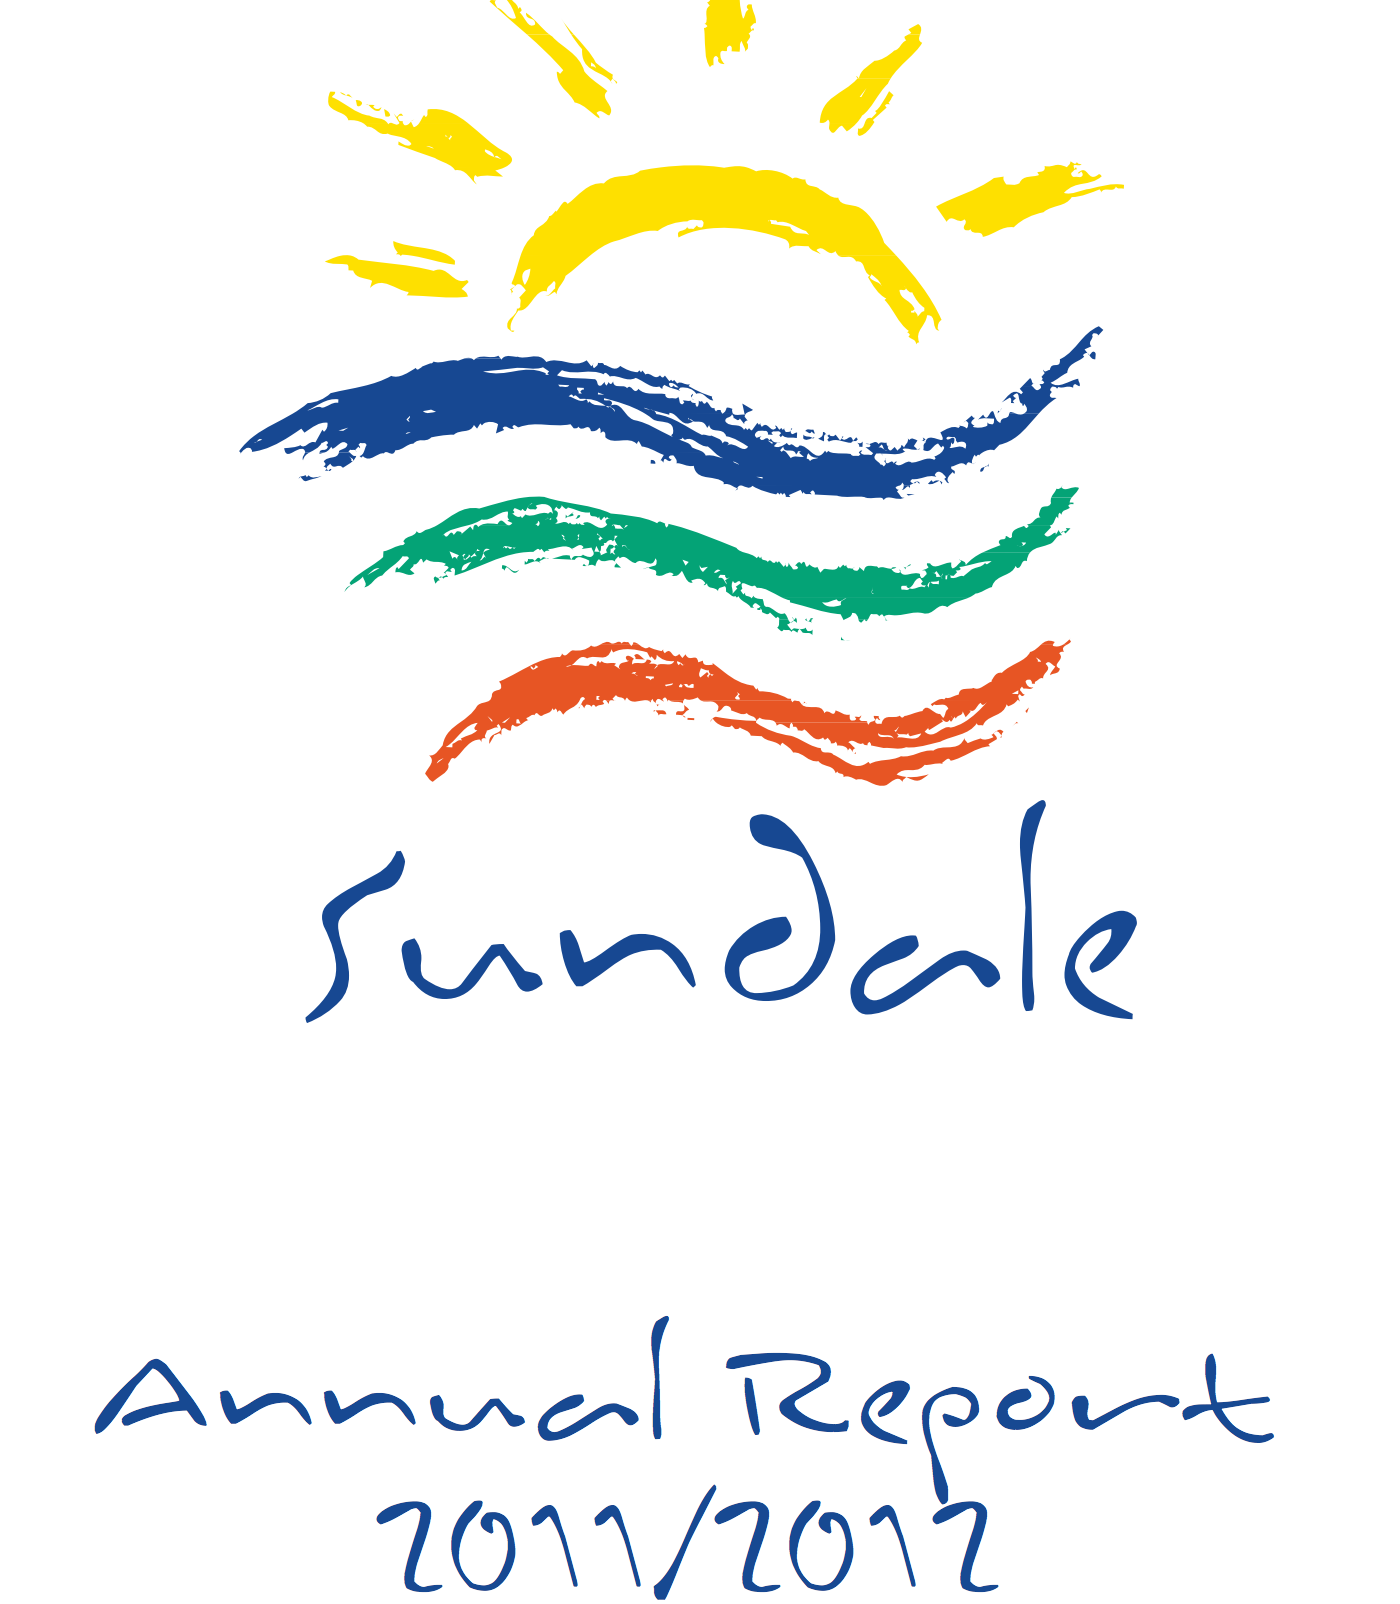 Sundale Annual Report 2011 2012.png